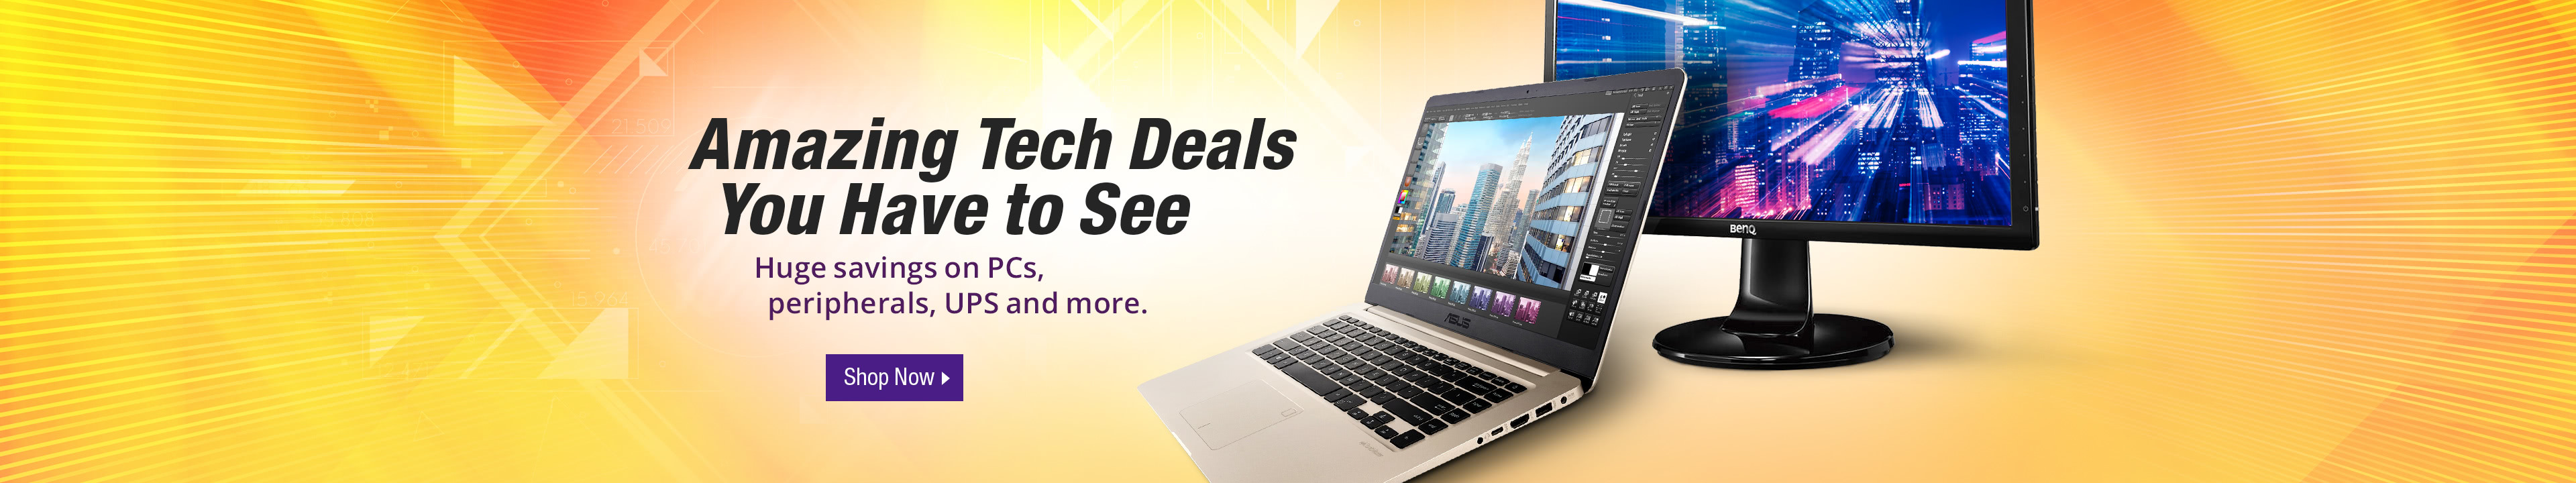 Amazing Tech Deals You Have to See